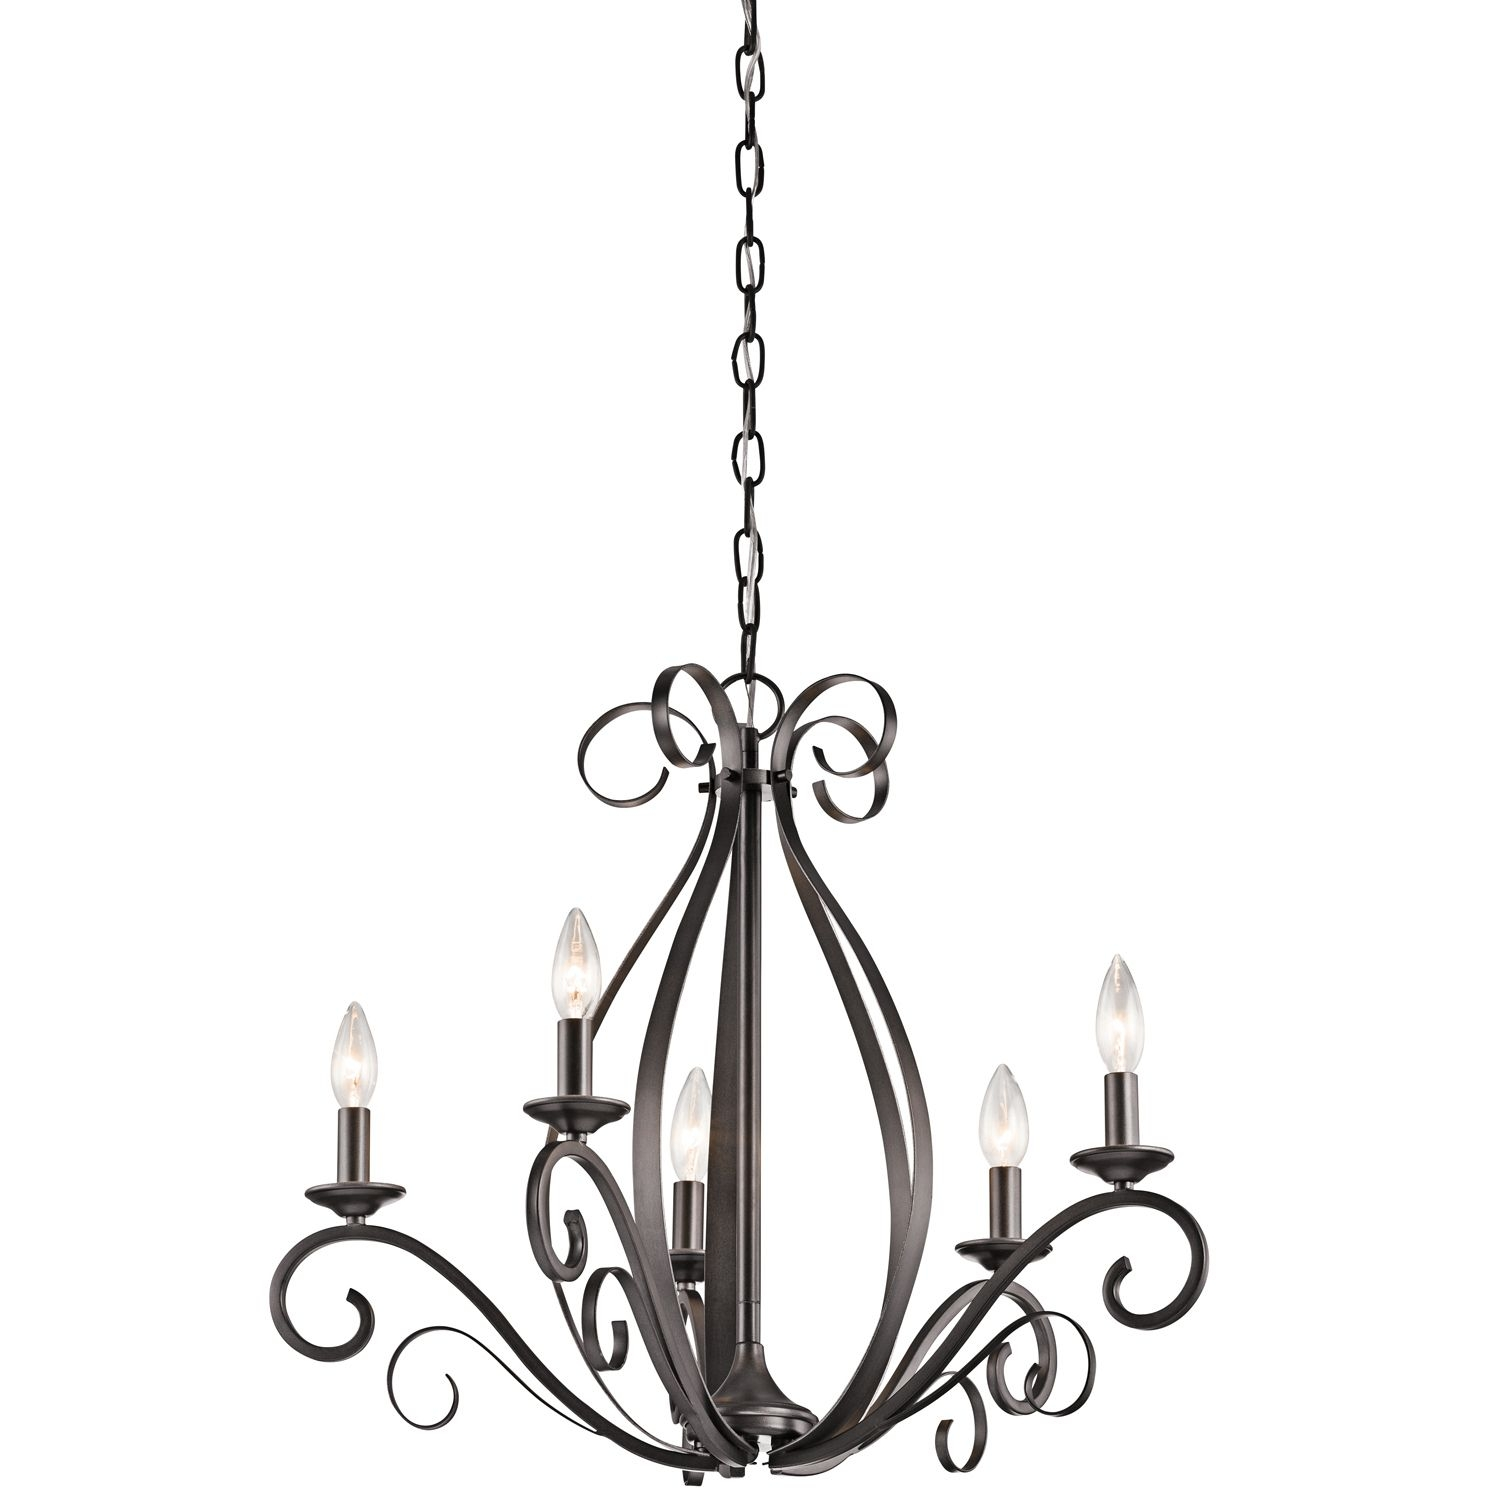 Kambry 5 Light Candle Chandelier